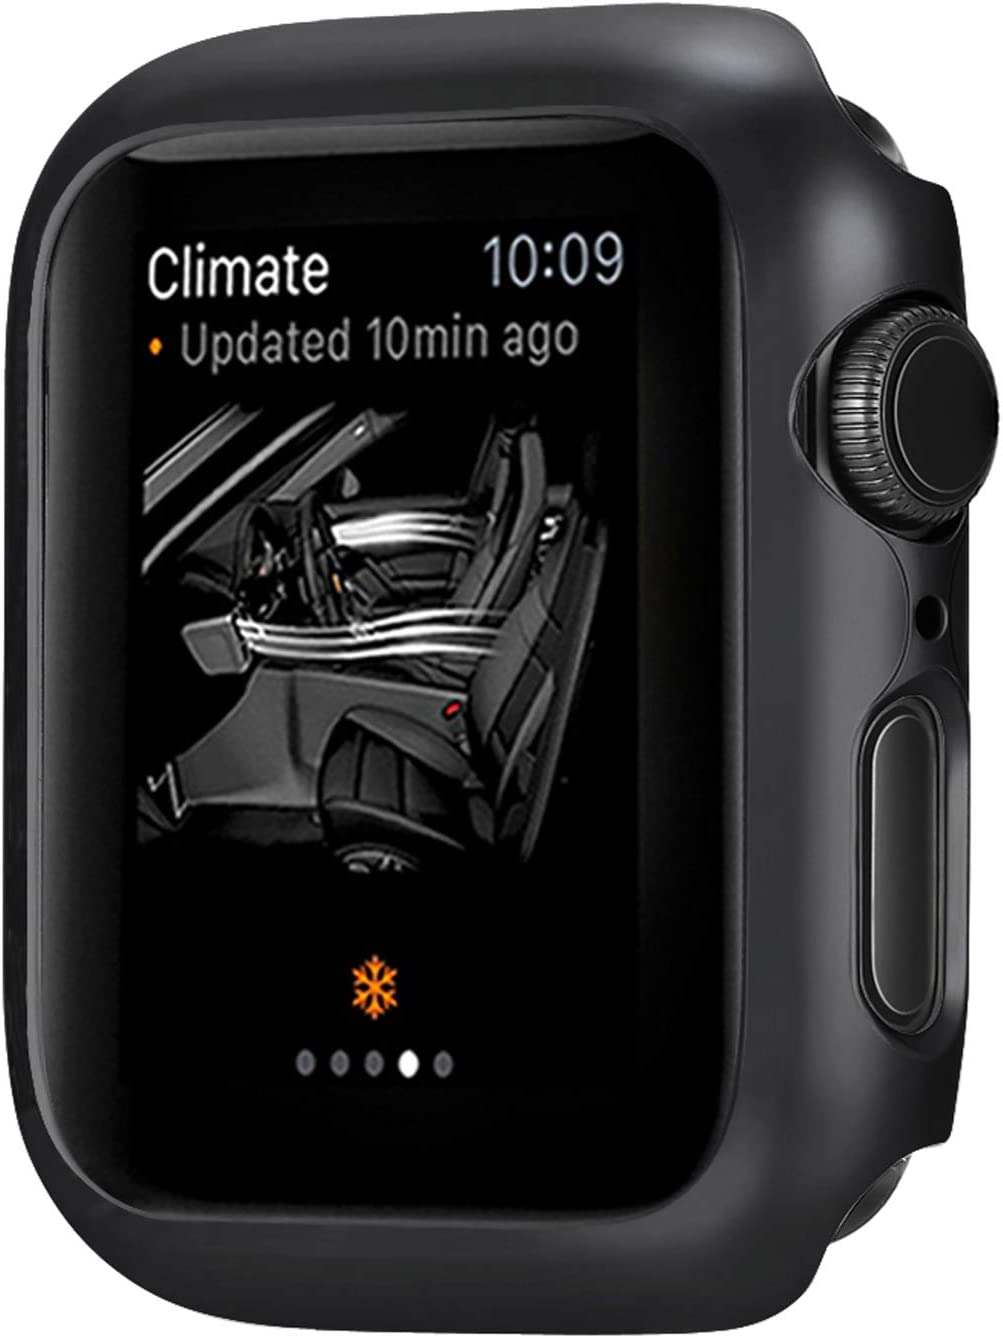 Leotop Compatible with Apple Watch Series 6 5 4 SE Case 44mm 40mm, Super Thin Bumper Protector PC Hard Cover Lightweight Slim Shockproof Accessories Matte Frame Compatible iWatch (Black, 44mm)